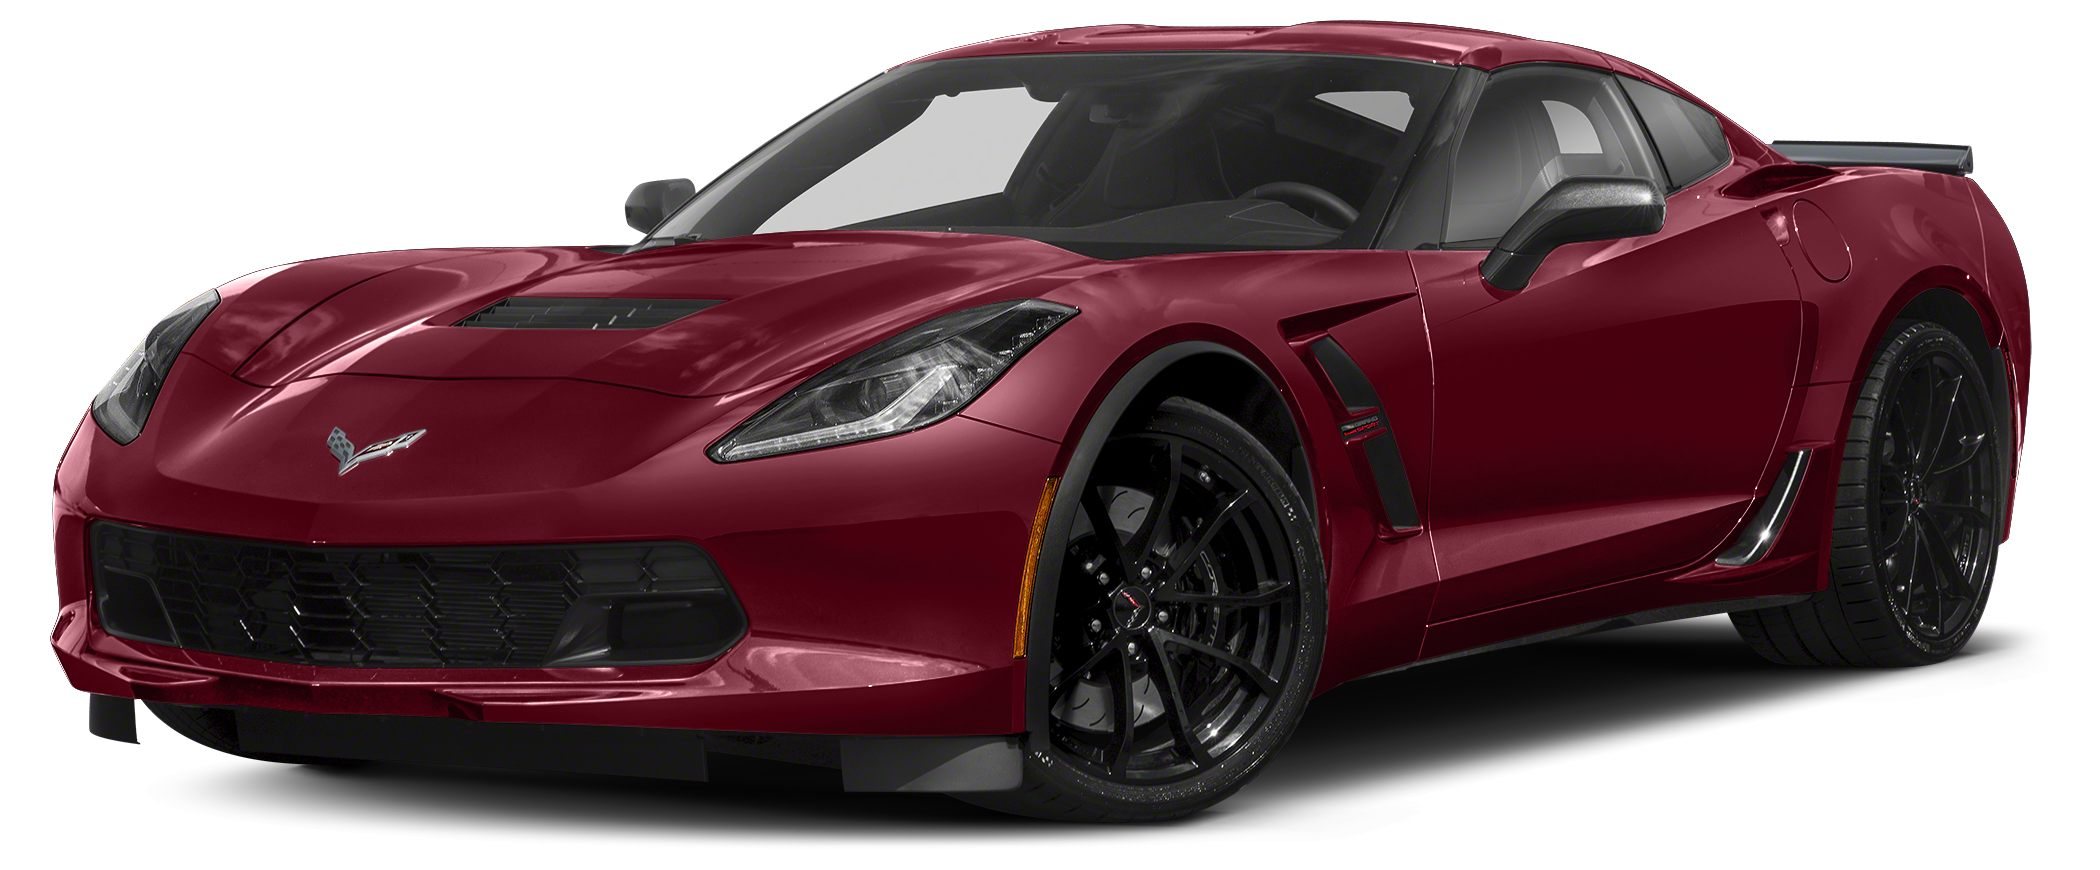 2018 Chevrolet Corvette Grand Sport Miles 0Color Long Beach Red Metallic Tintcoat Stock CO8040